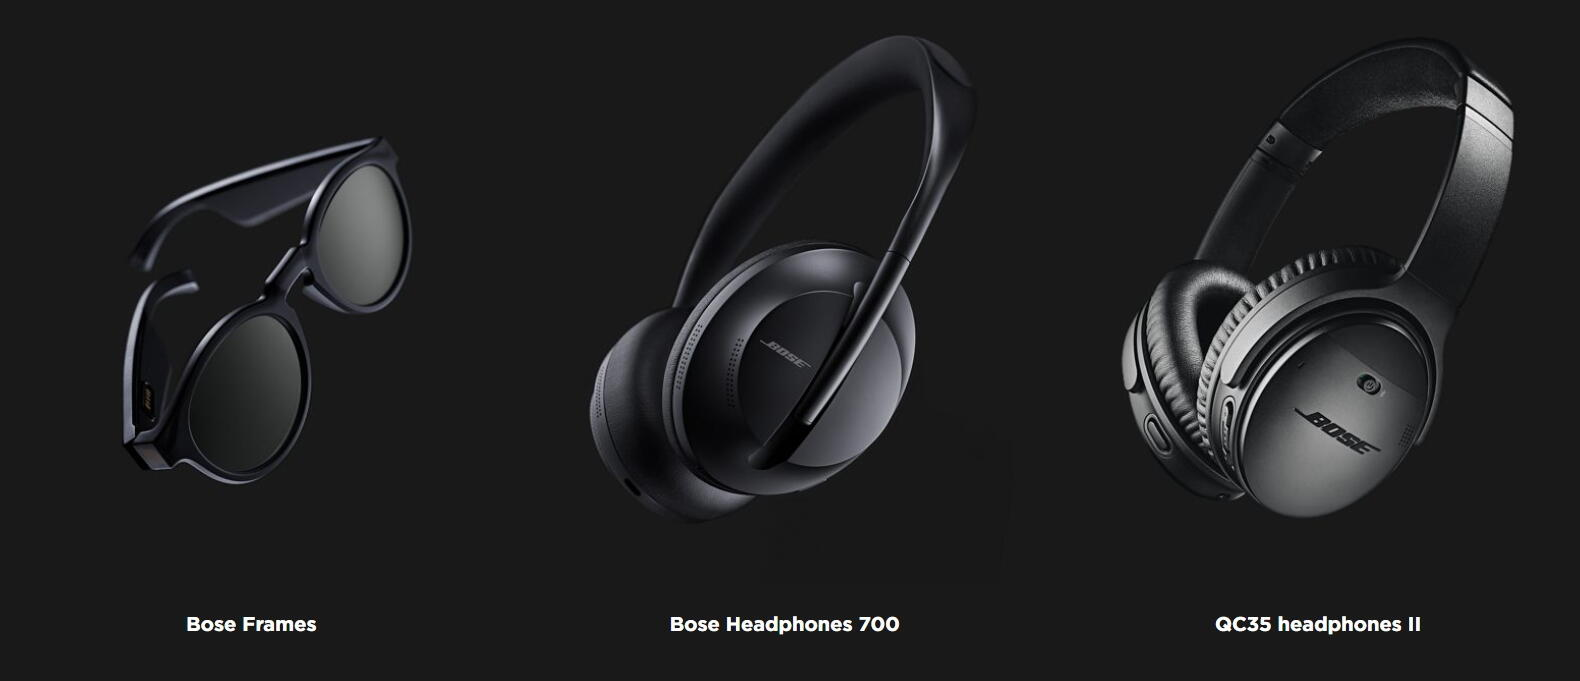 Bose AR products